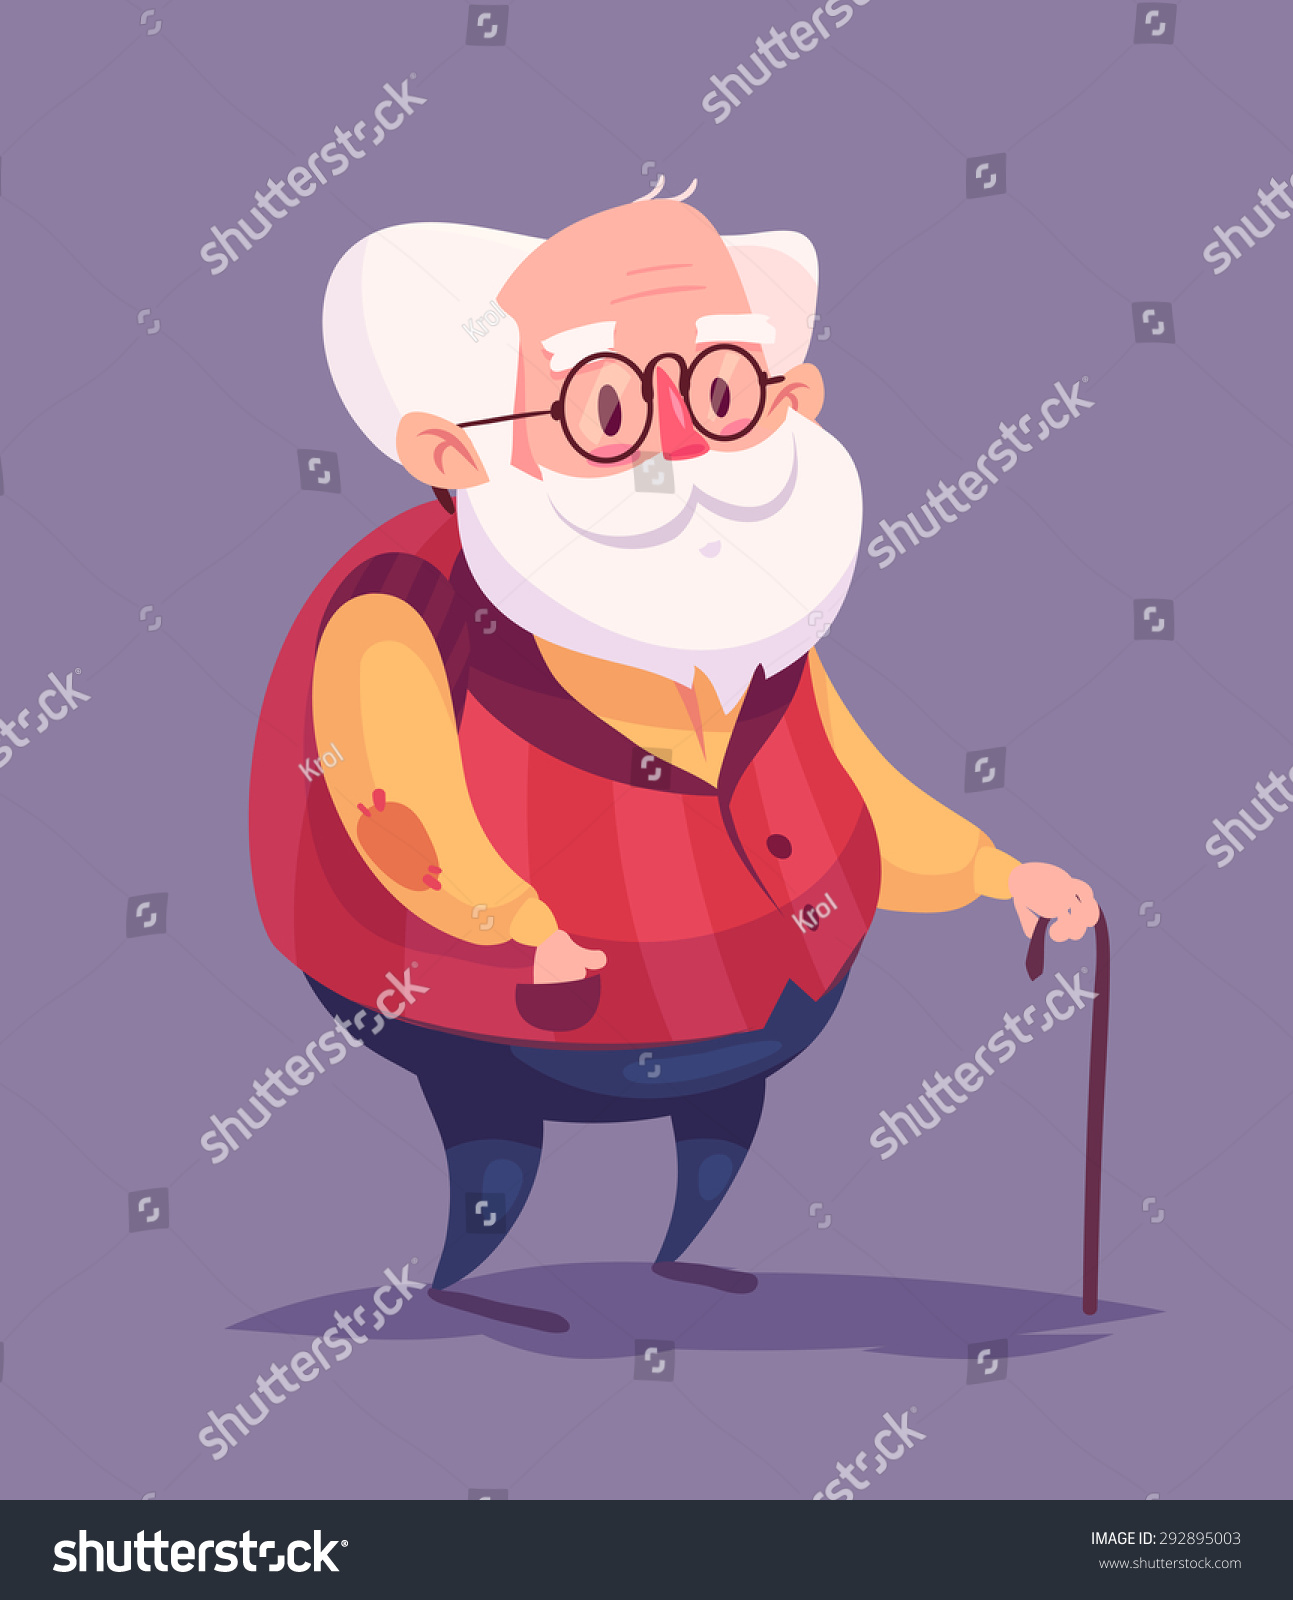 Cartoon Characters Old Man : Funny illustration old man cartoon character stock vector